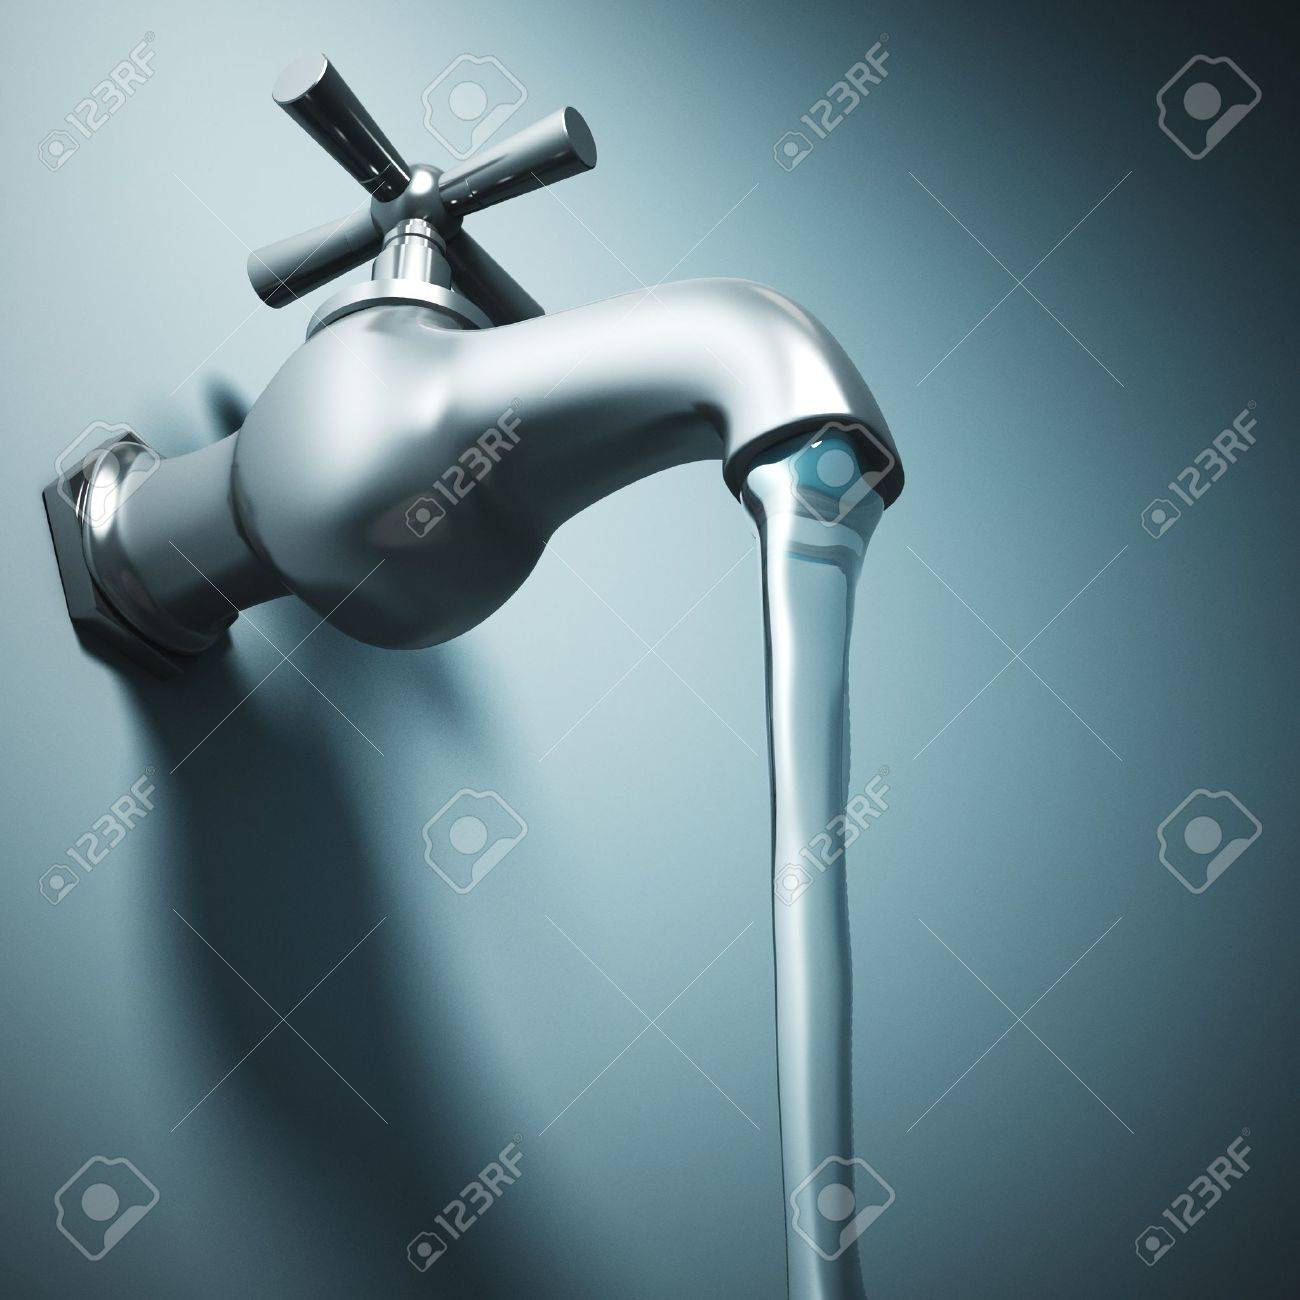 3d Image Of Metal Tap And Running Water Stock Photo, Picture And ...